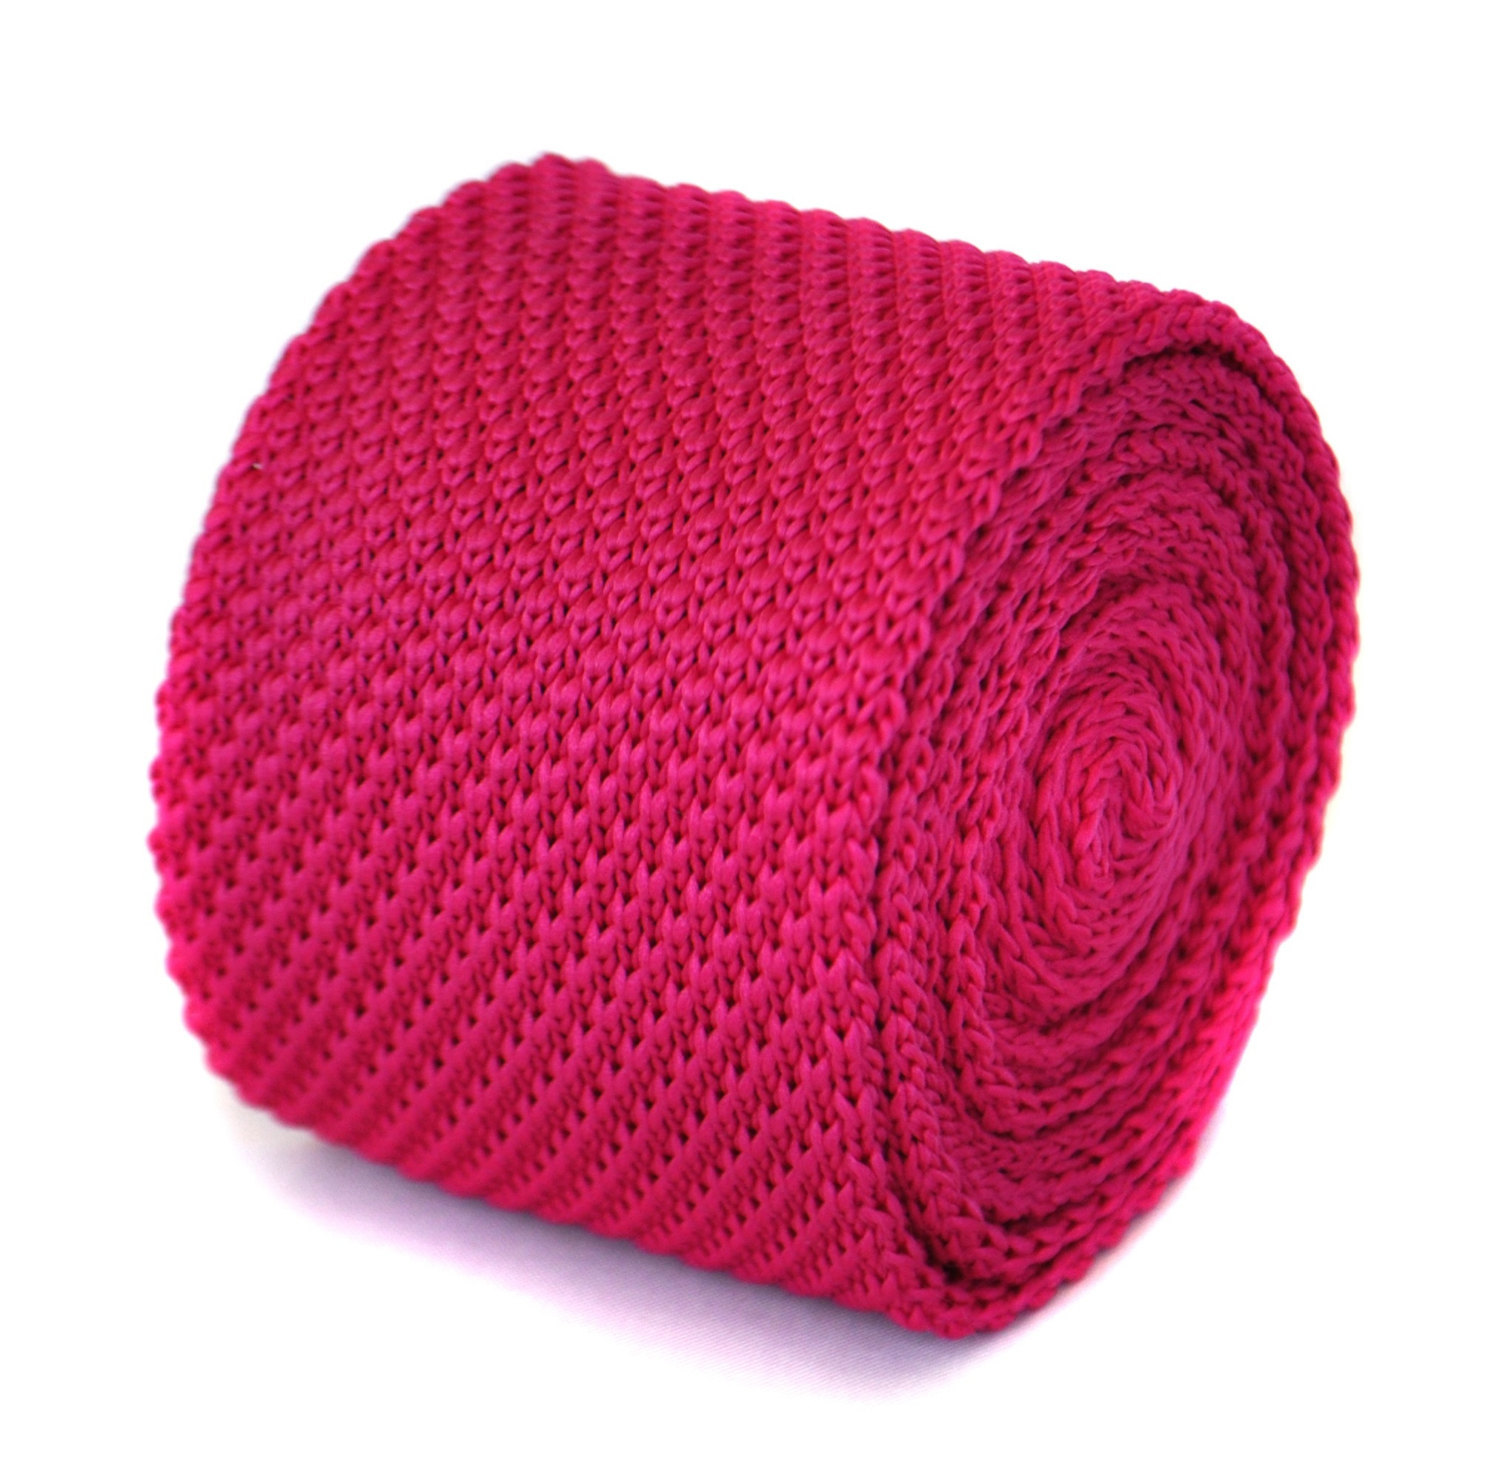 skinny bright fuchsia pink plain knitted tie by Frederick Thomas FT1854